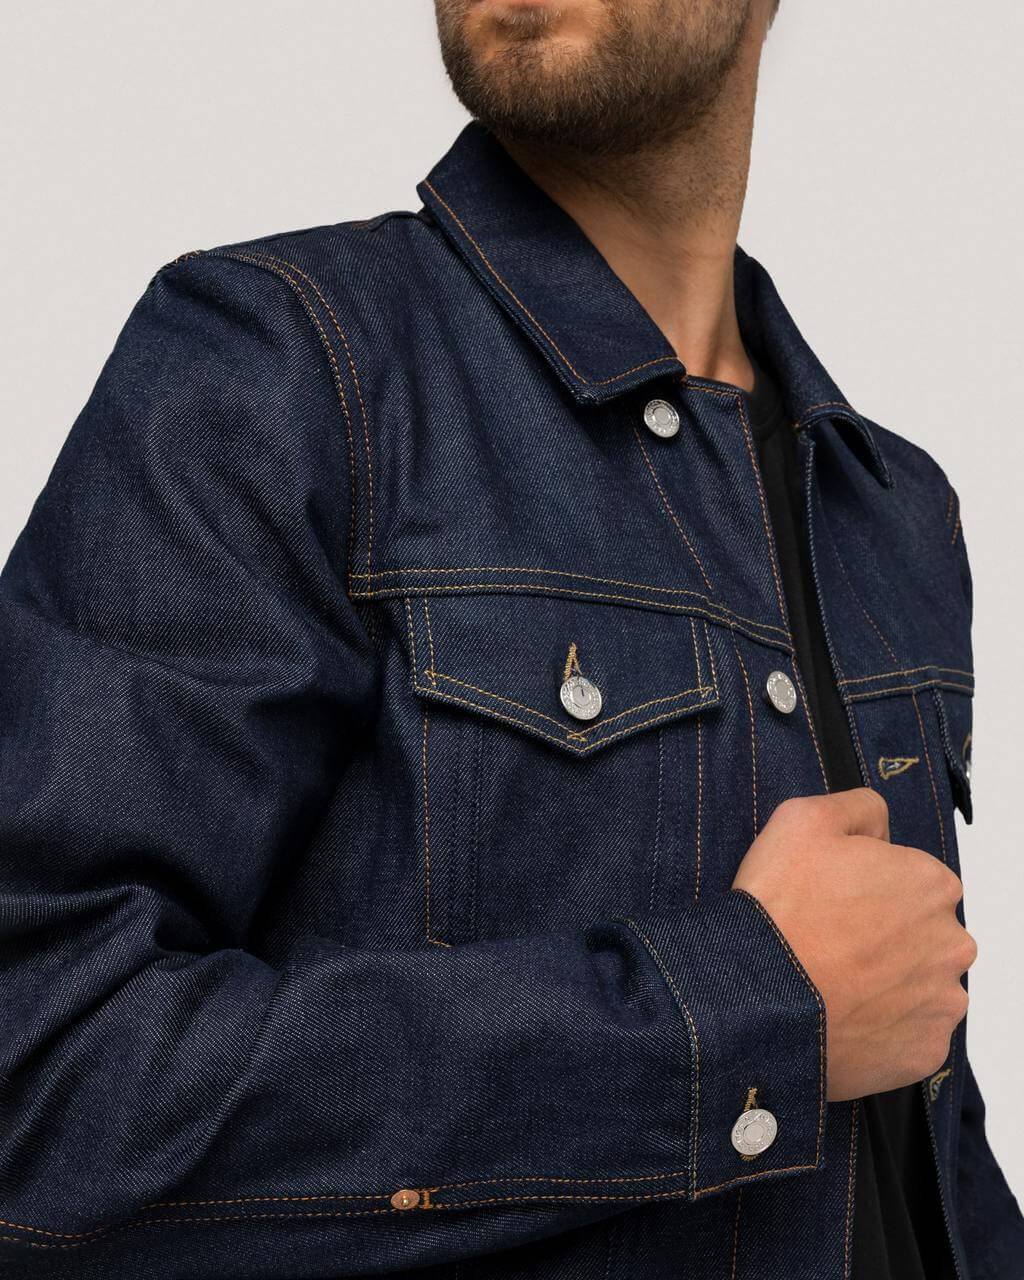 variant_1 | EN Blue Jacket Denim Jeans Men Kings of Indigo | DE Blaue Jeansjacke Herren Kings of Indigo